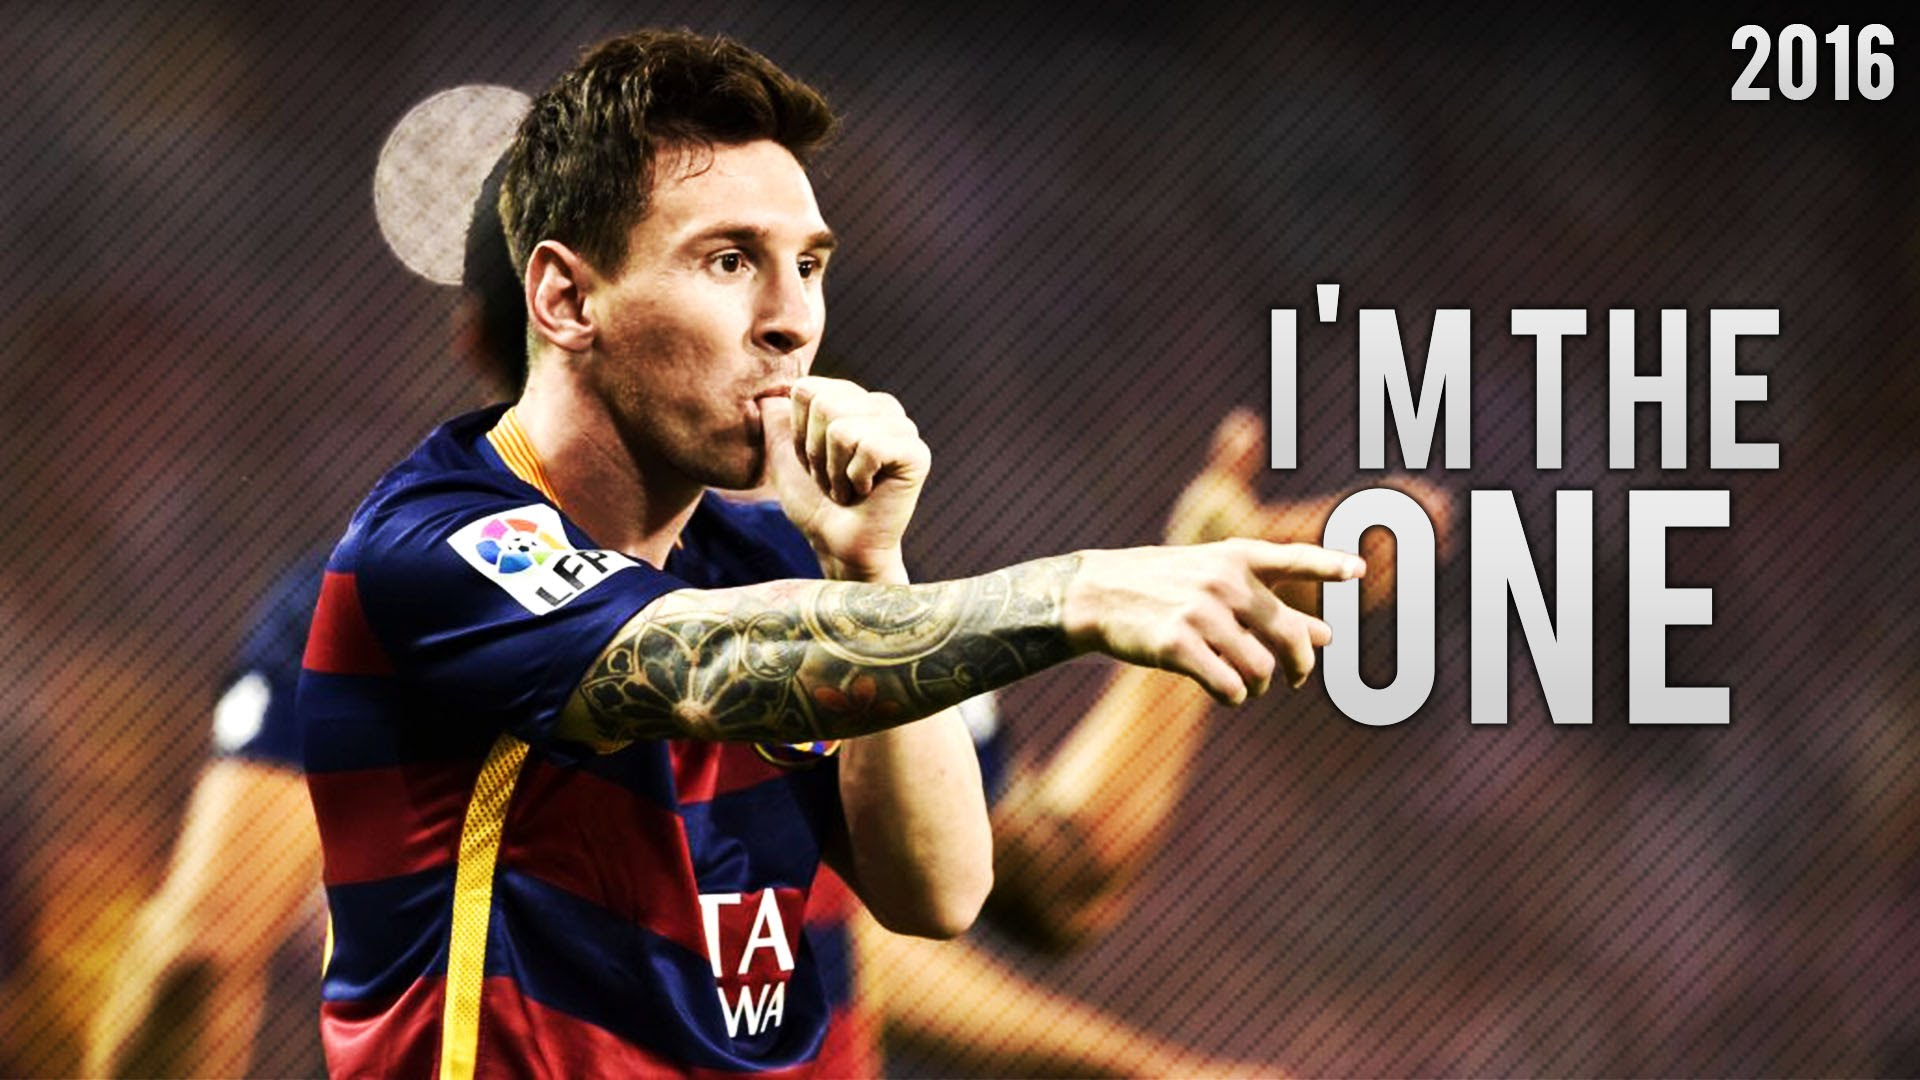 Free Nice Quotes Wallpapers Lionel Messi Wallpapers 2018